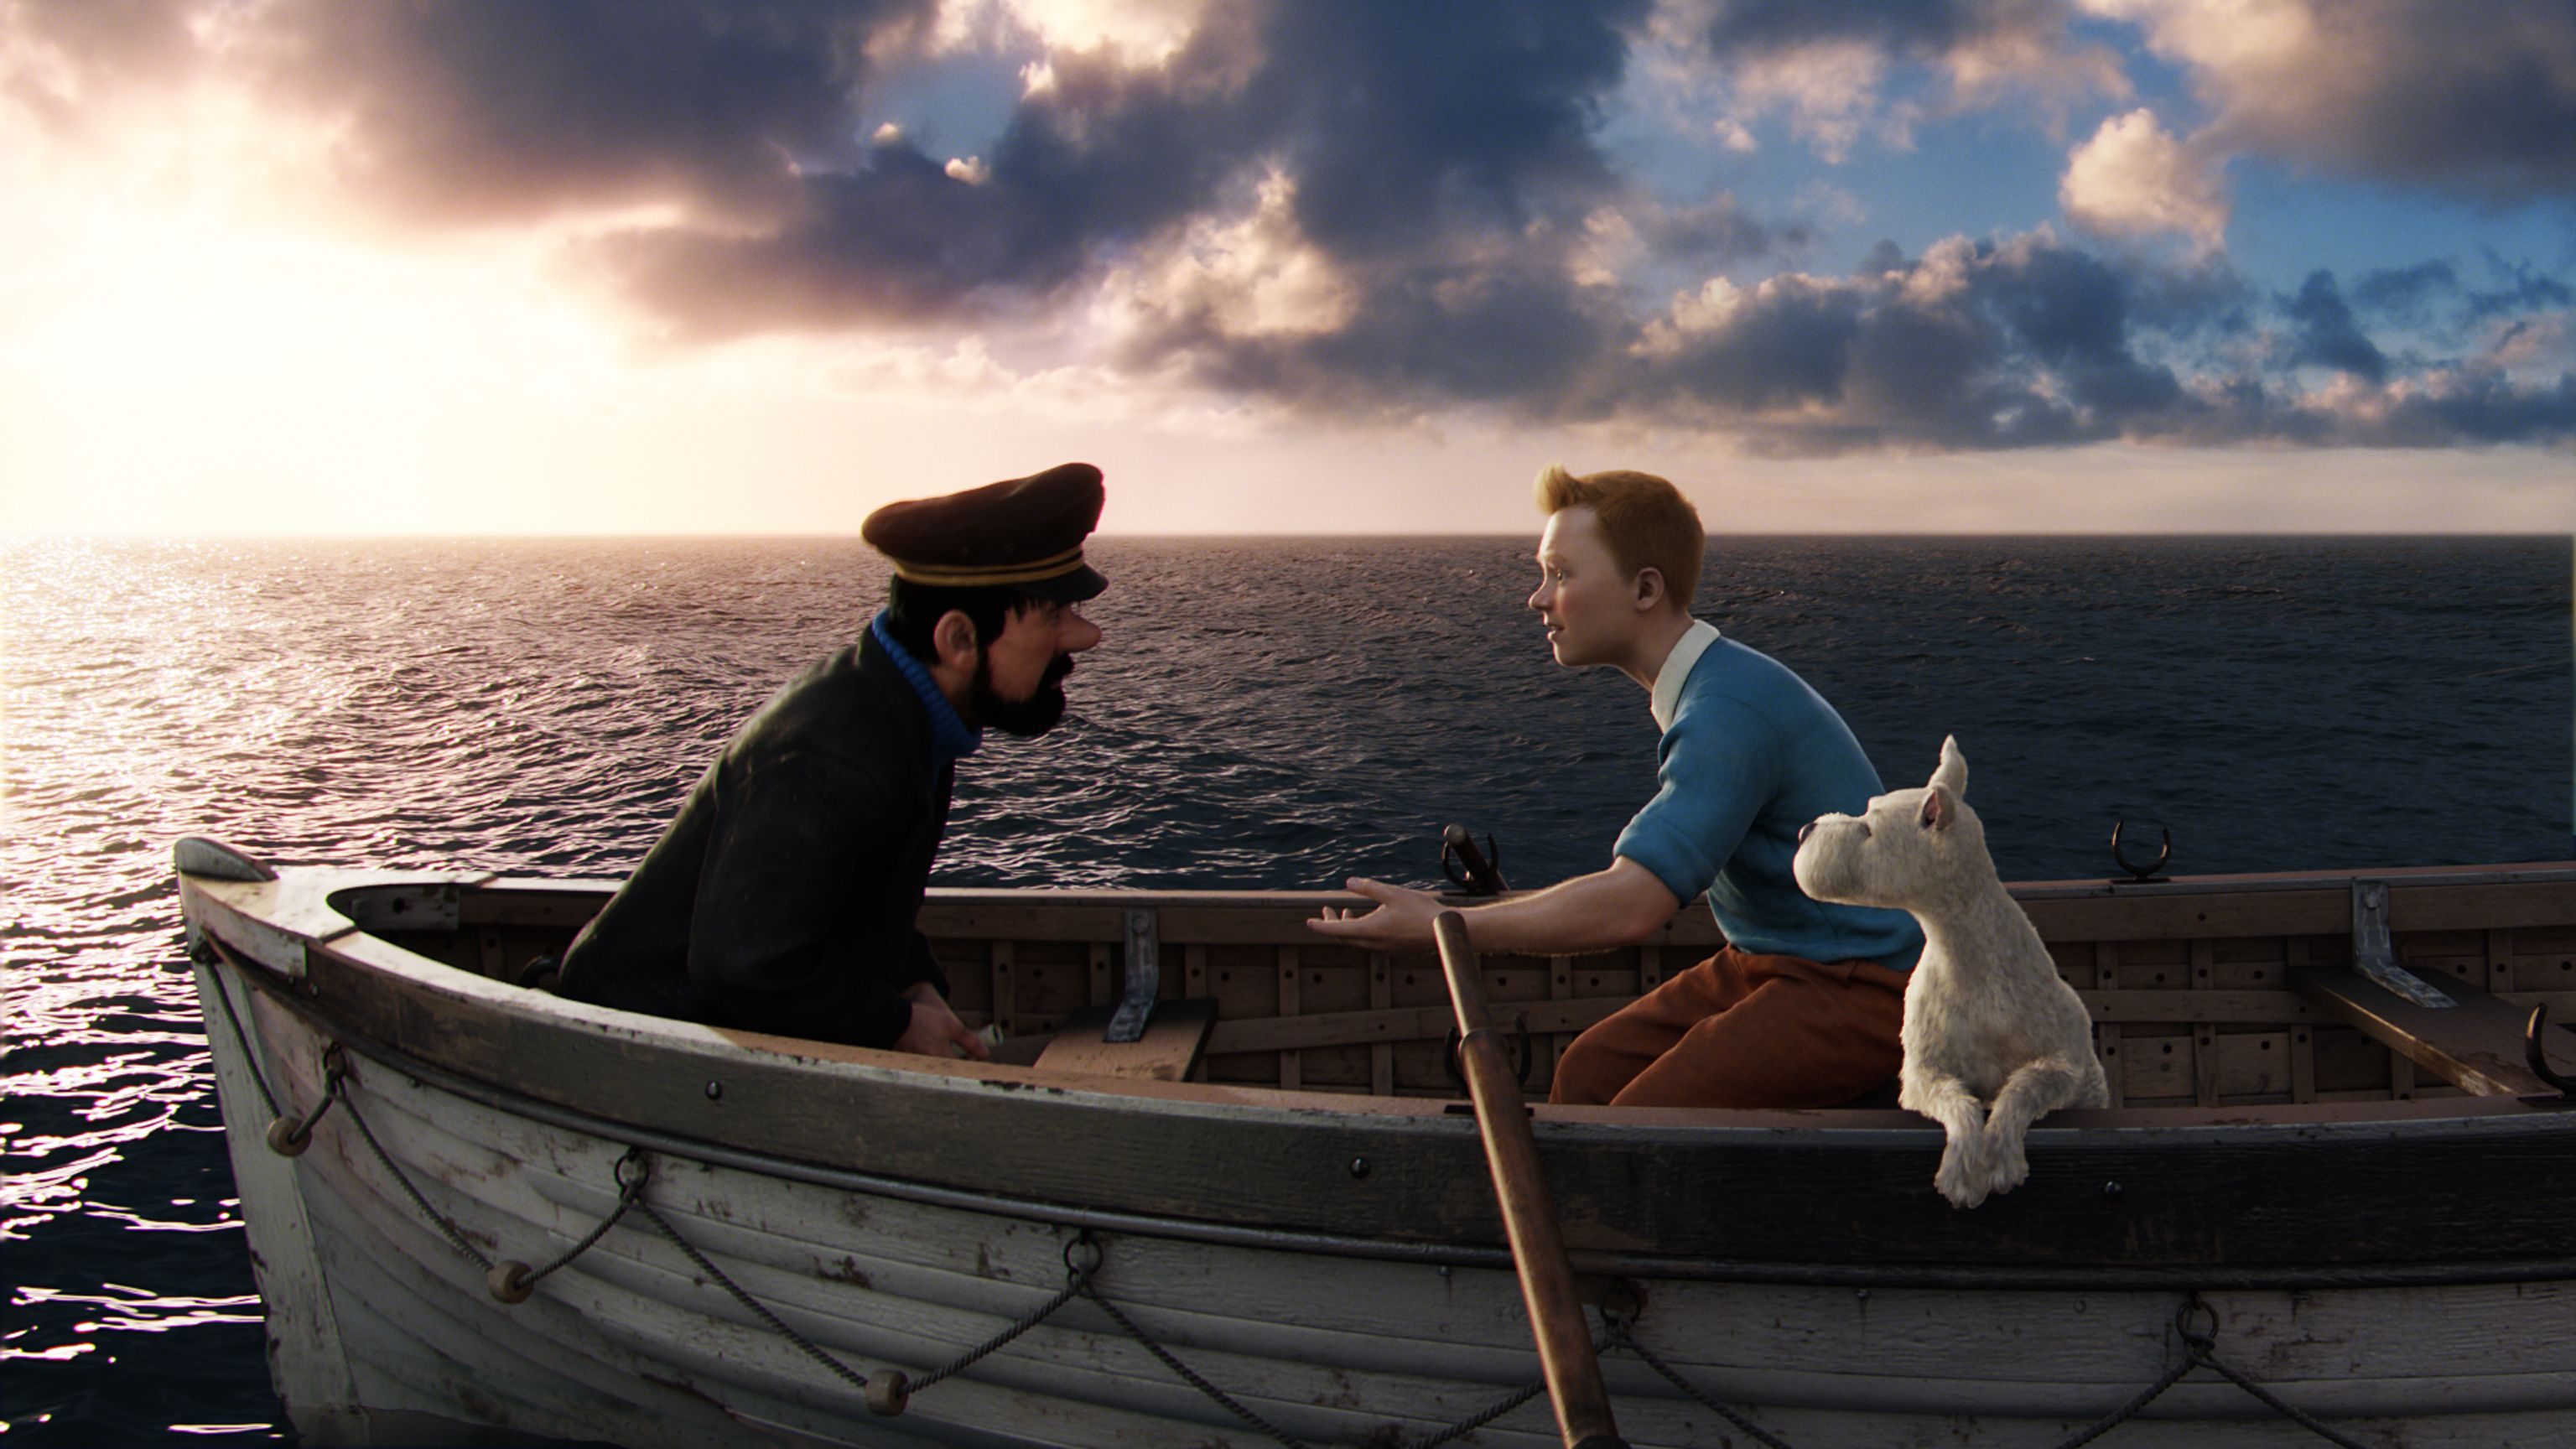 group of tintin movie wallpaper